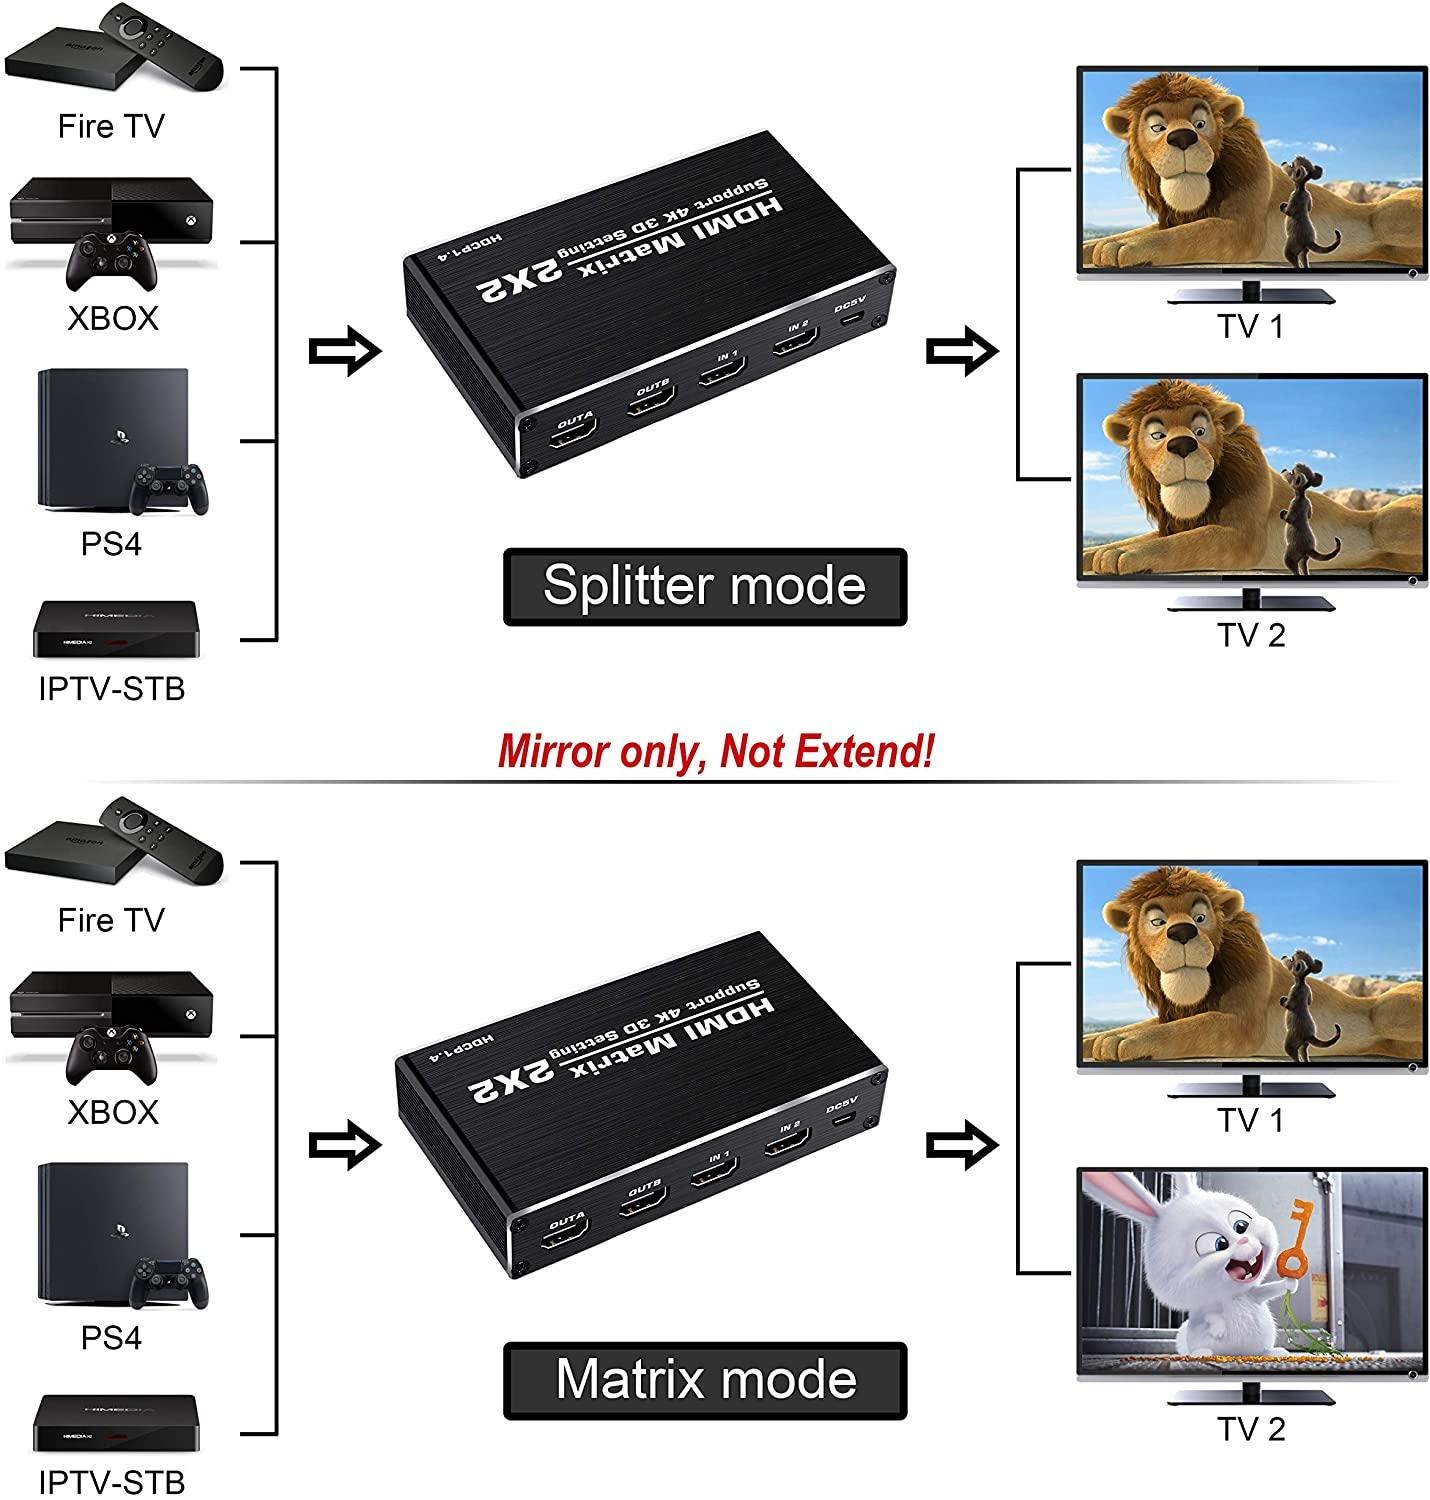 HDMI 2x2 Matrix Switcher 4k 60hz, 2 Ports HDMI Switch Splitter 2 in 2 Out, Support HDMI 2.0, HDCP 1.4, 3D, 1080p, 4K x 2K enlarge